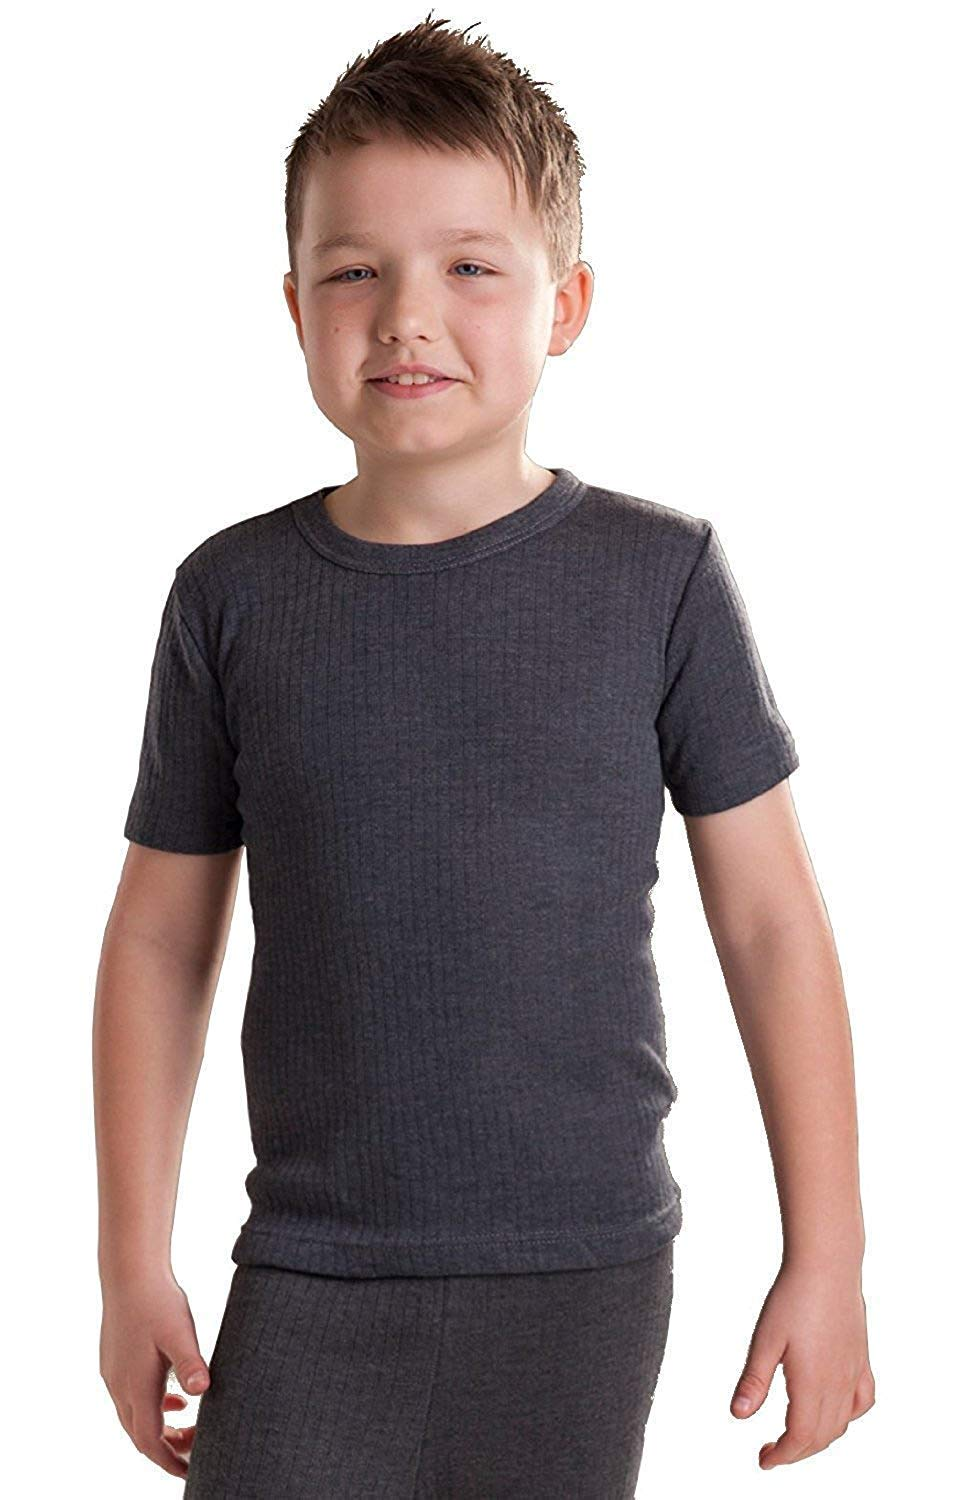 Octave 12 Pack Boys Thermal Underwear Short Sleeve T-Shirt/Vest/Top (2-3 yrs [Chest: 18-20 inches], Charcoal) by Octave